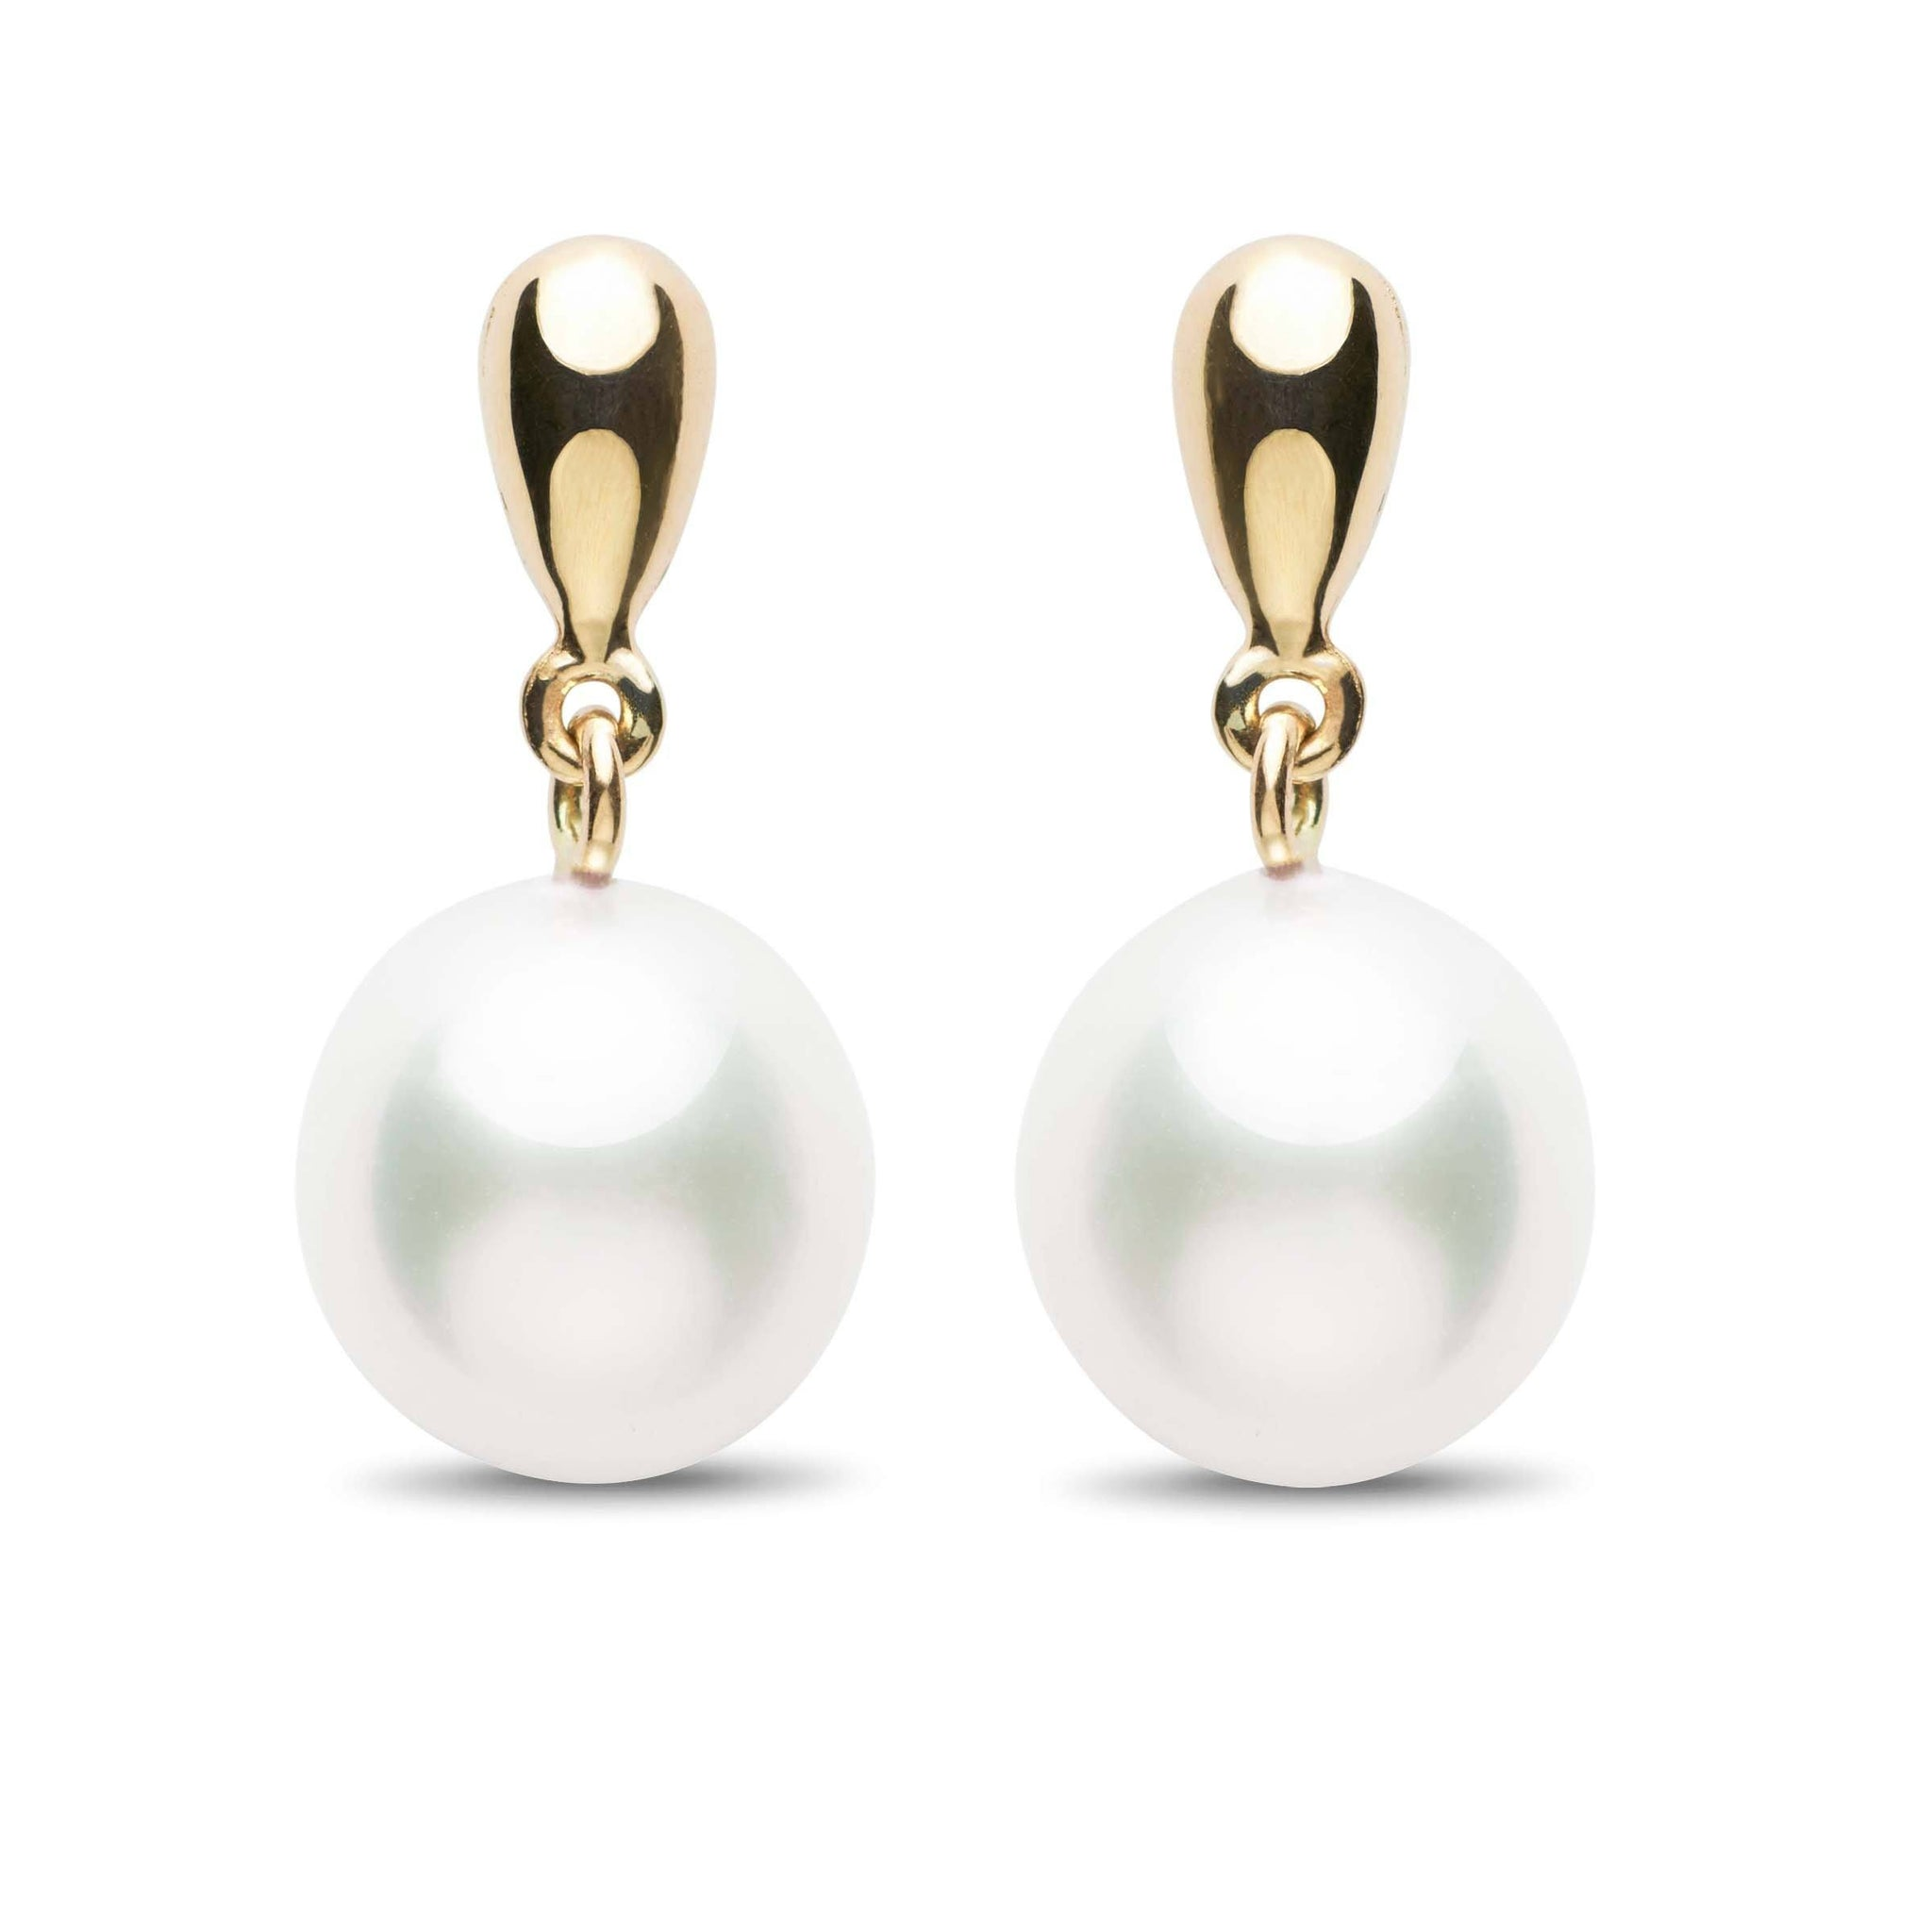 queen timeless at classic snowflack category sale price type jewelry real frozen snowflake pearl earring earrings product best